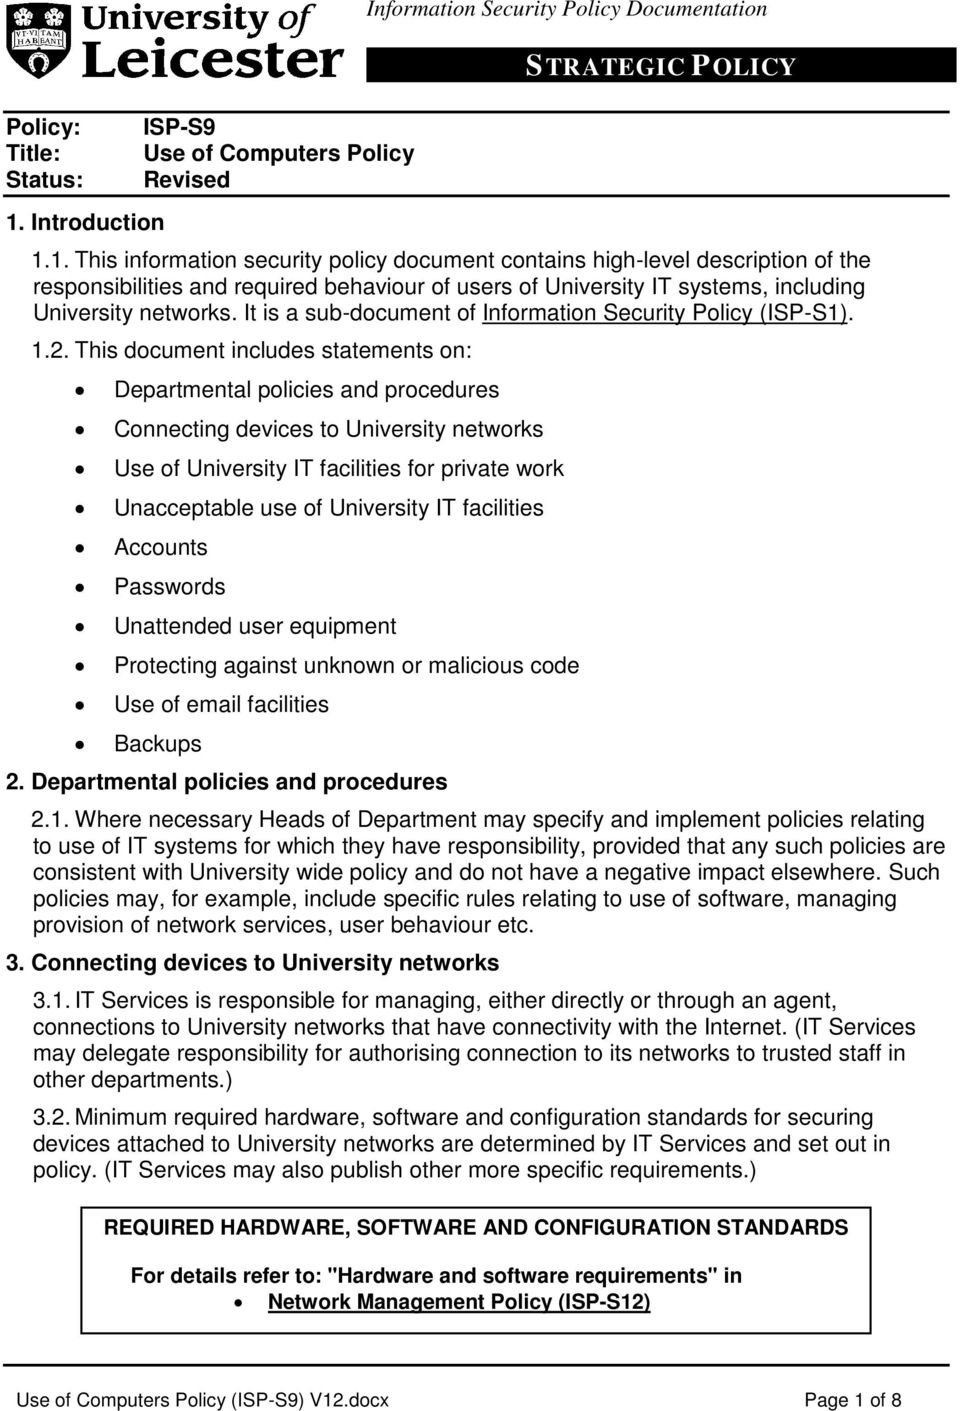 1. This information security policy document contains high-level description of the responsibilities and required behaviour of users of University IT systems, including University networks.